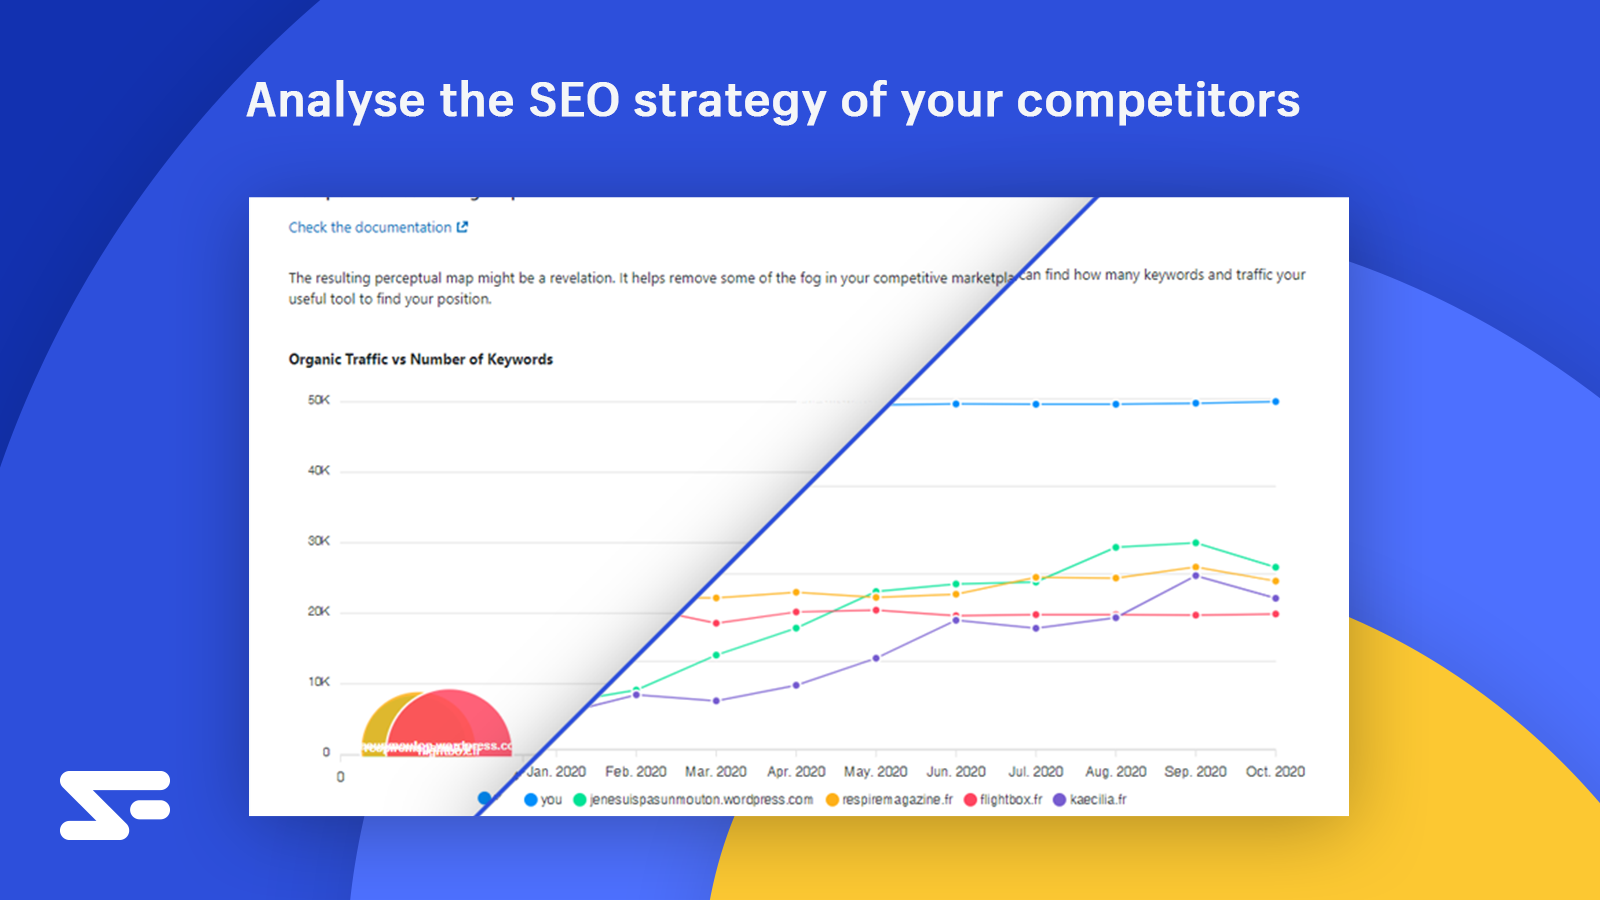 Analyse the SEO strategy of your competitors